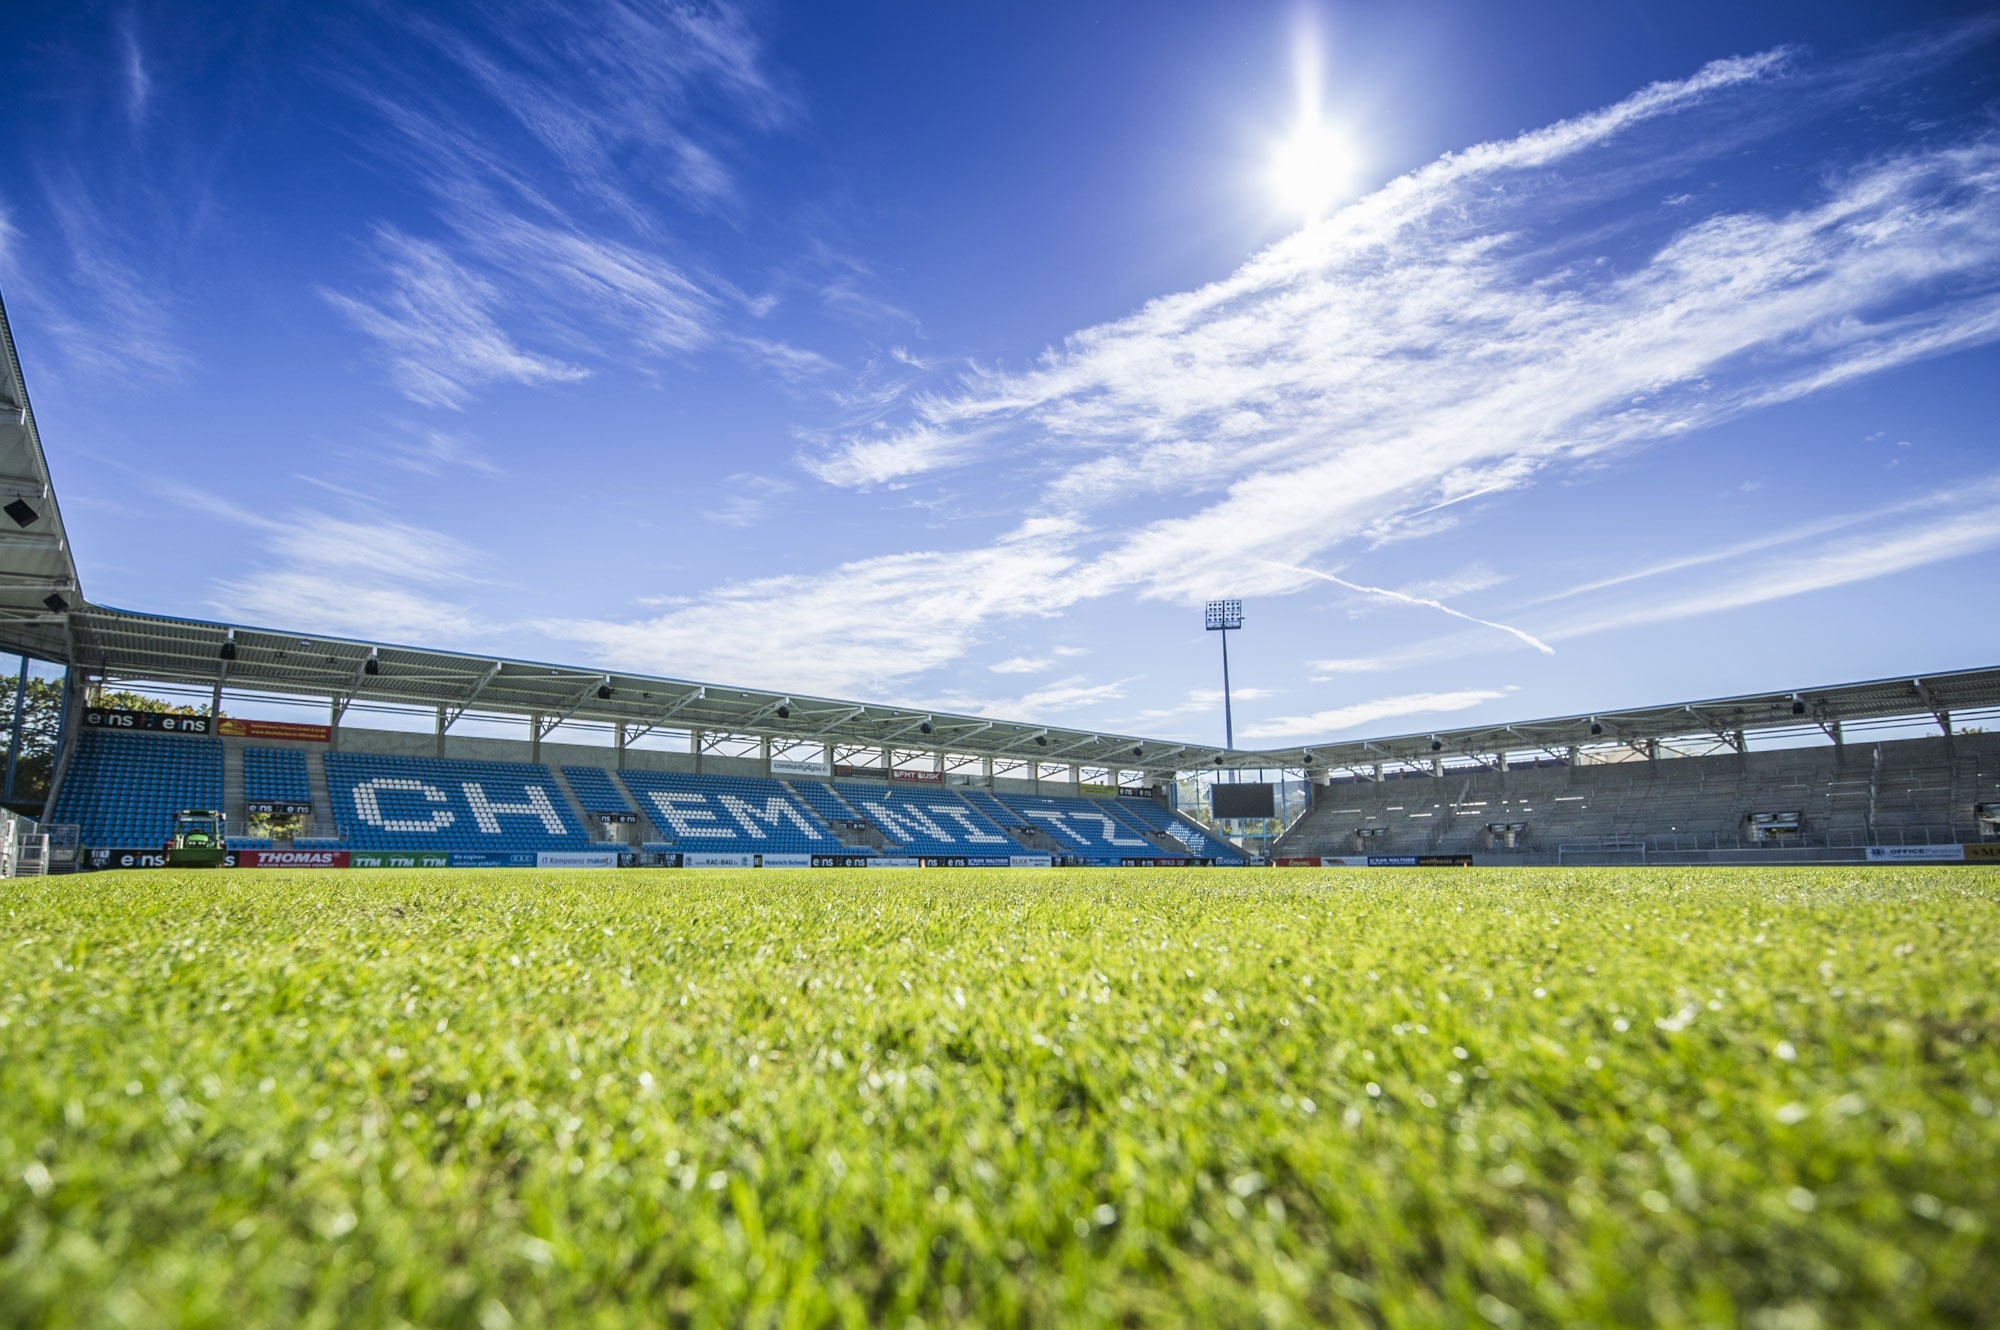 community4you ARENA Stadion Chemnitz